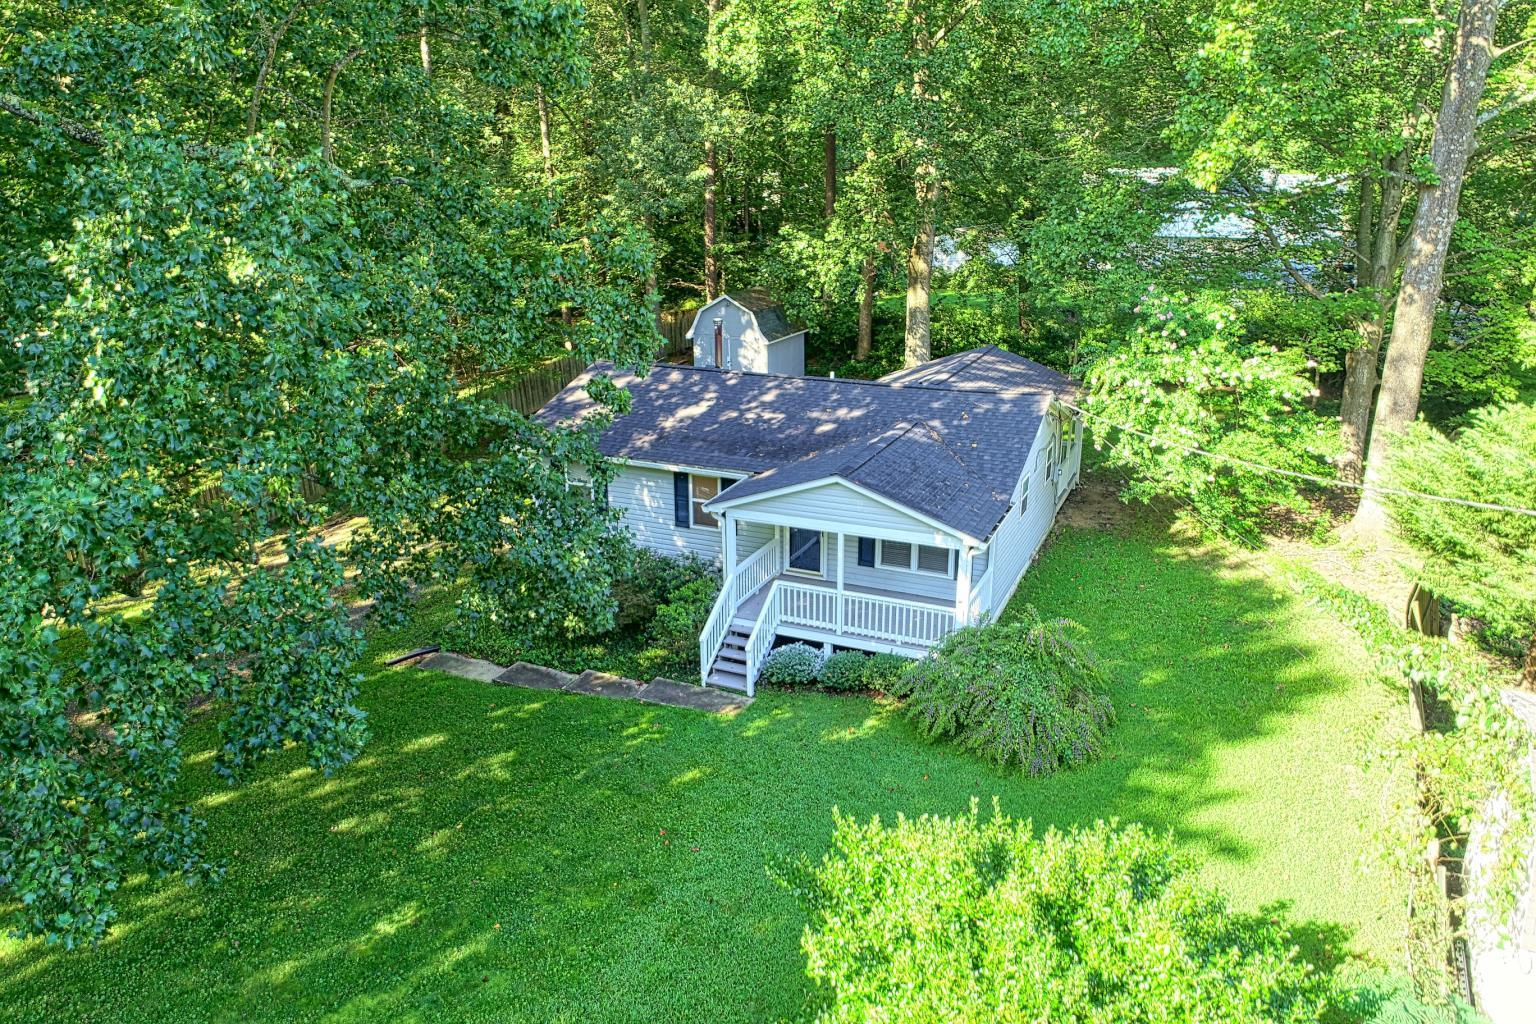 Privacy and More at 29783 Skyview Drive - Another Golden Beach Listing by Marie Lally, Realtor in Maryland